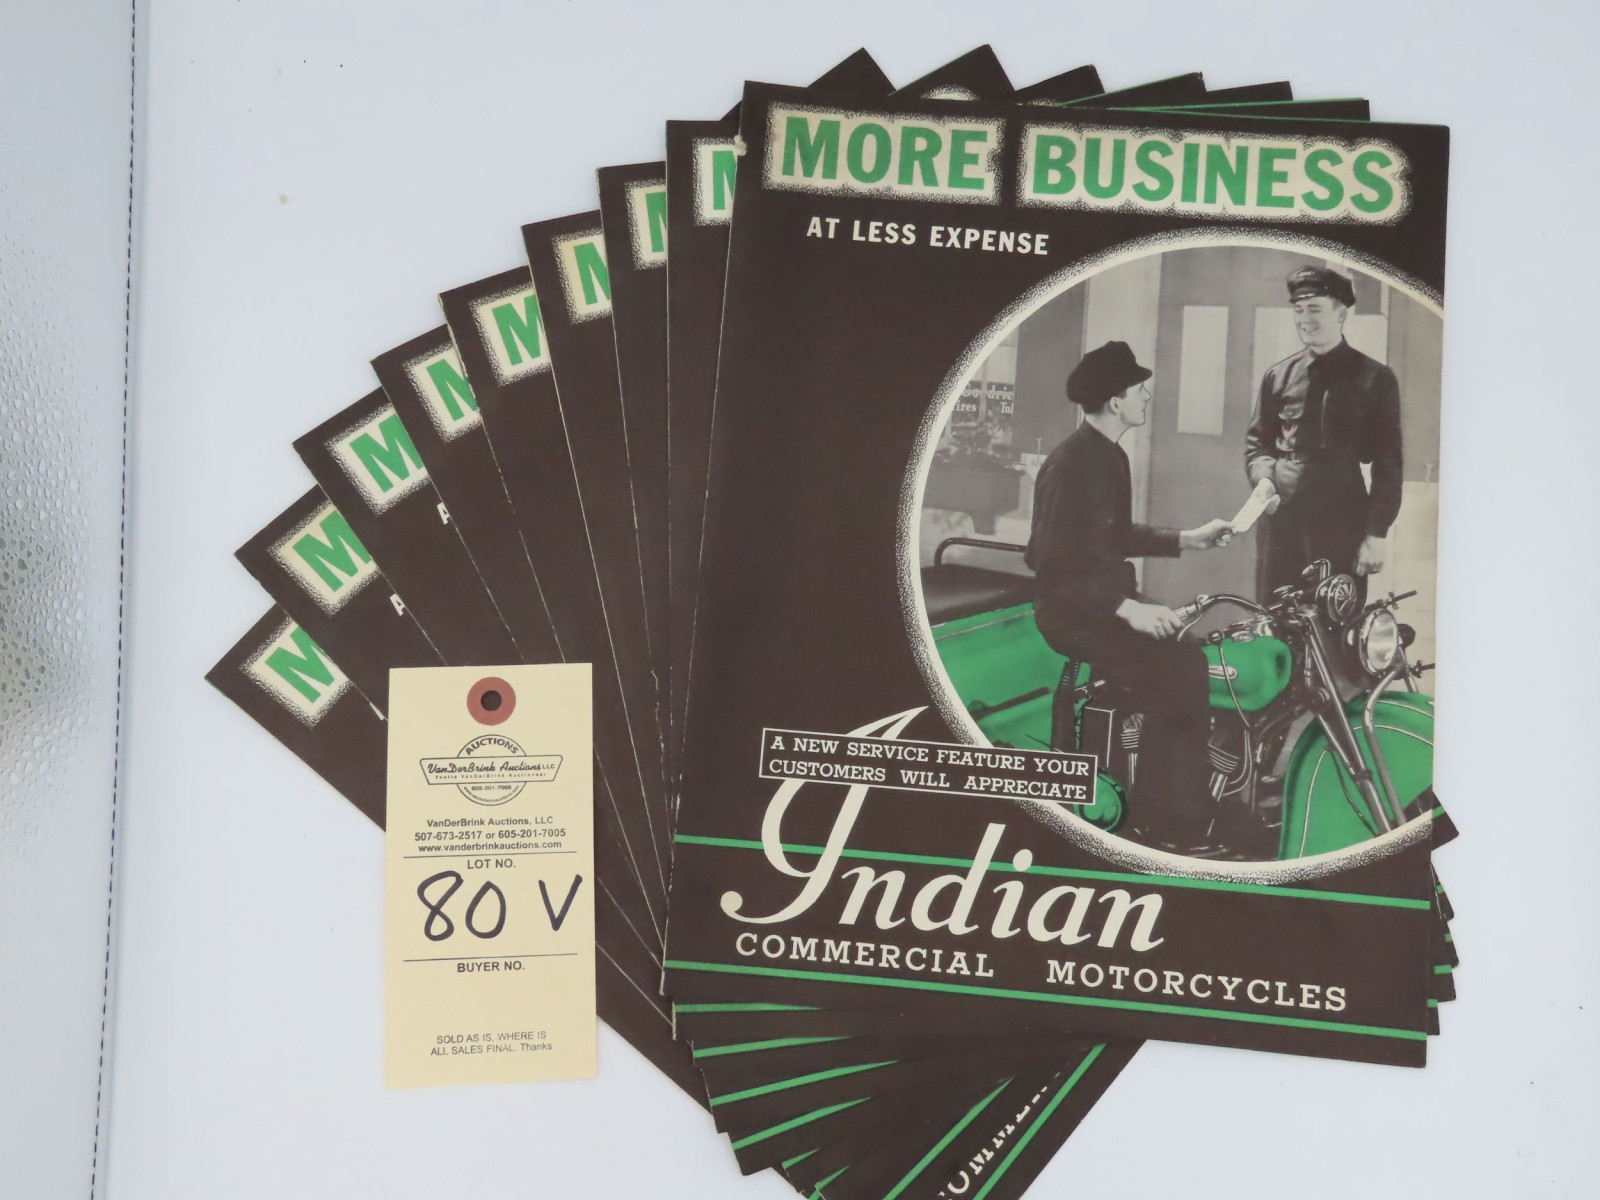 Indian Commercial Motorcycles advertising - Image 1